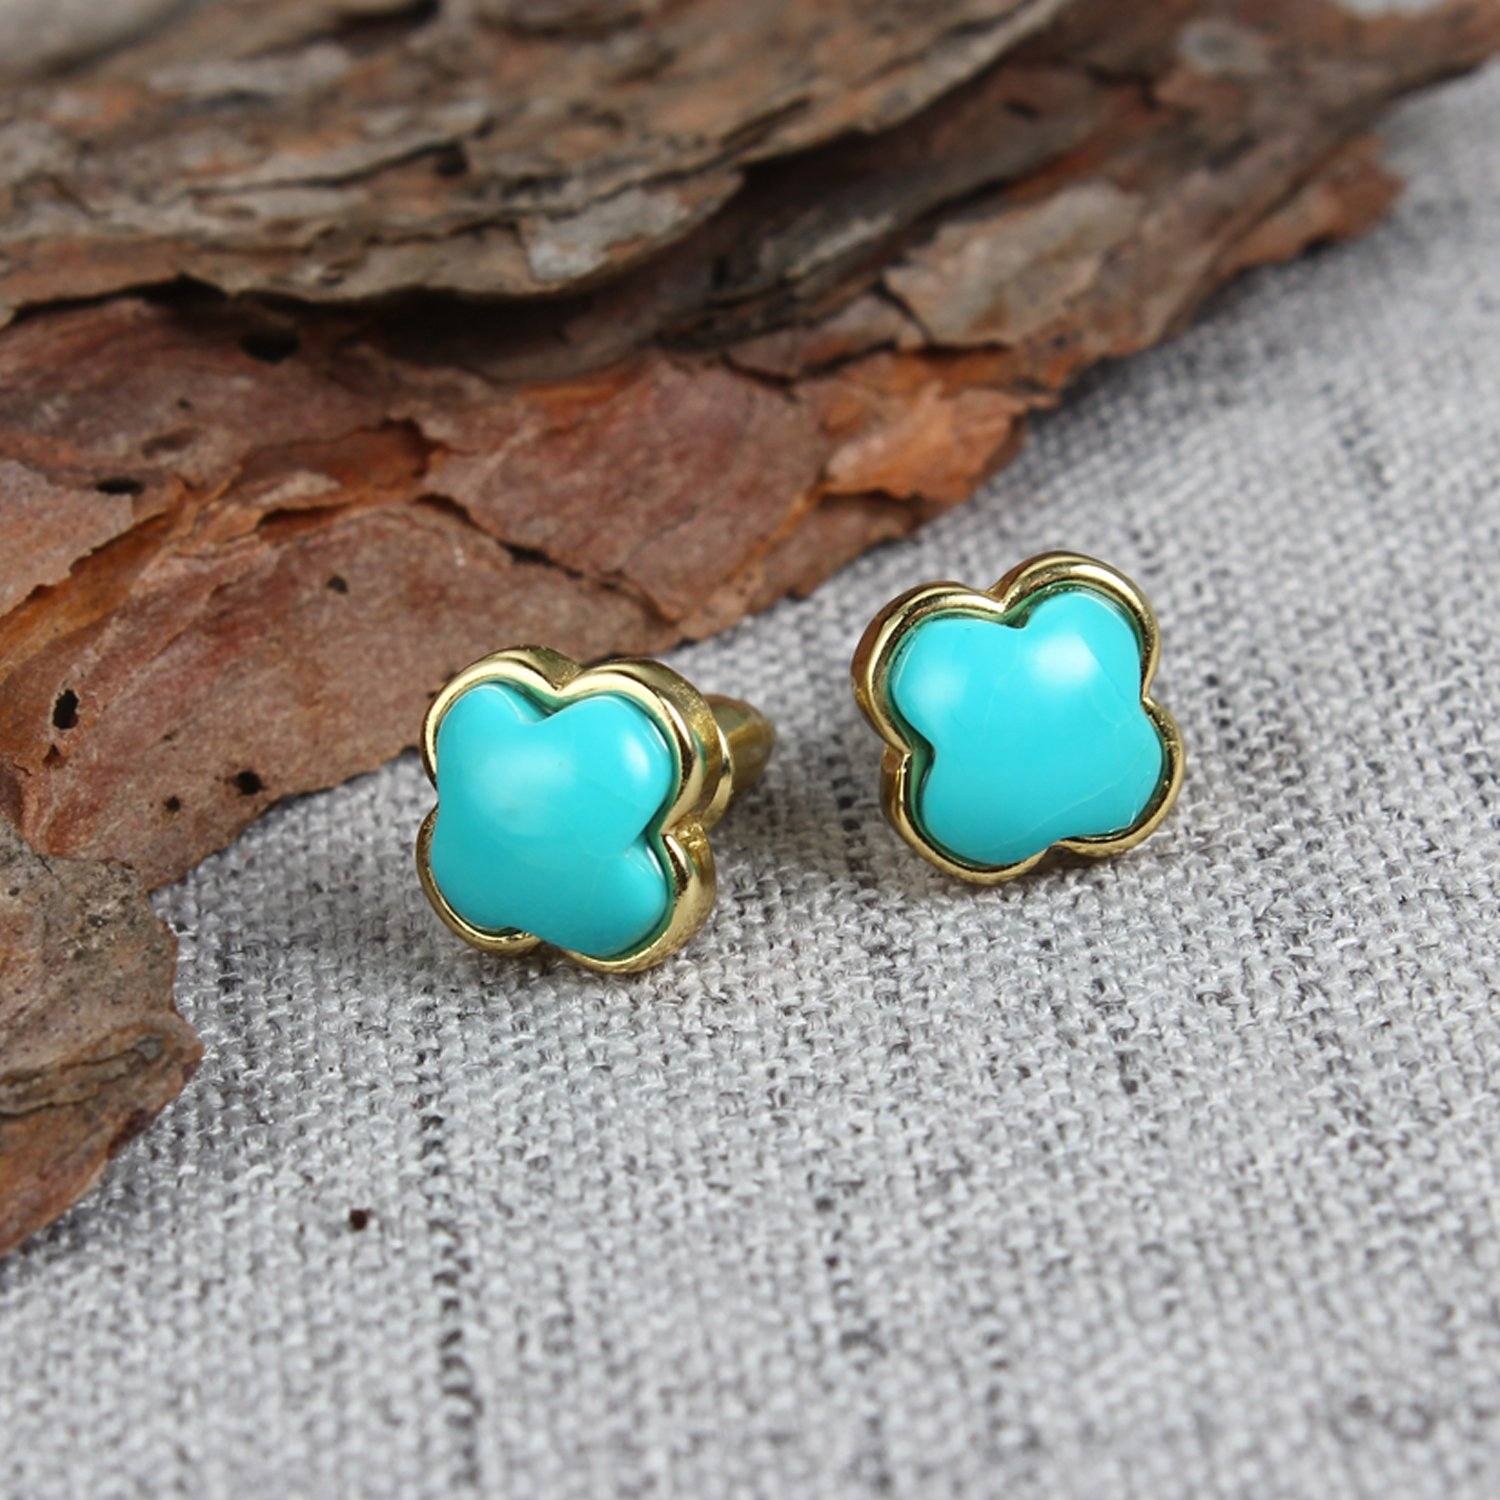 Bonnie S925 Sterling Silver Gemstone Birthstone Stud Earrings Silver//Gold Plated Turquoise Earring Stud for Women 6-12mm